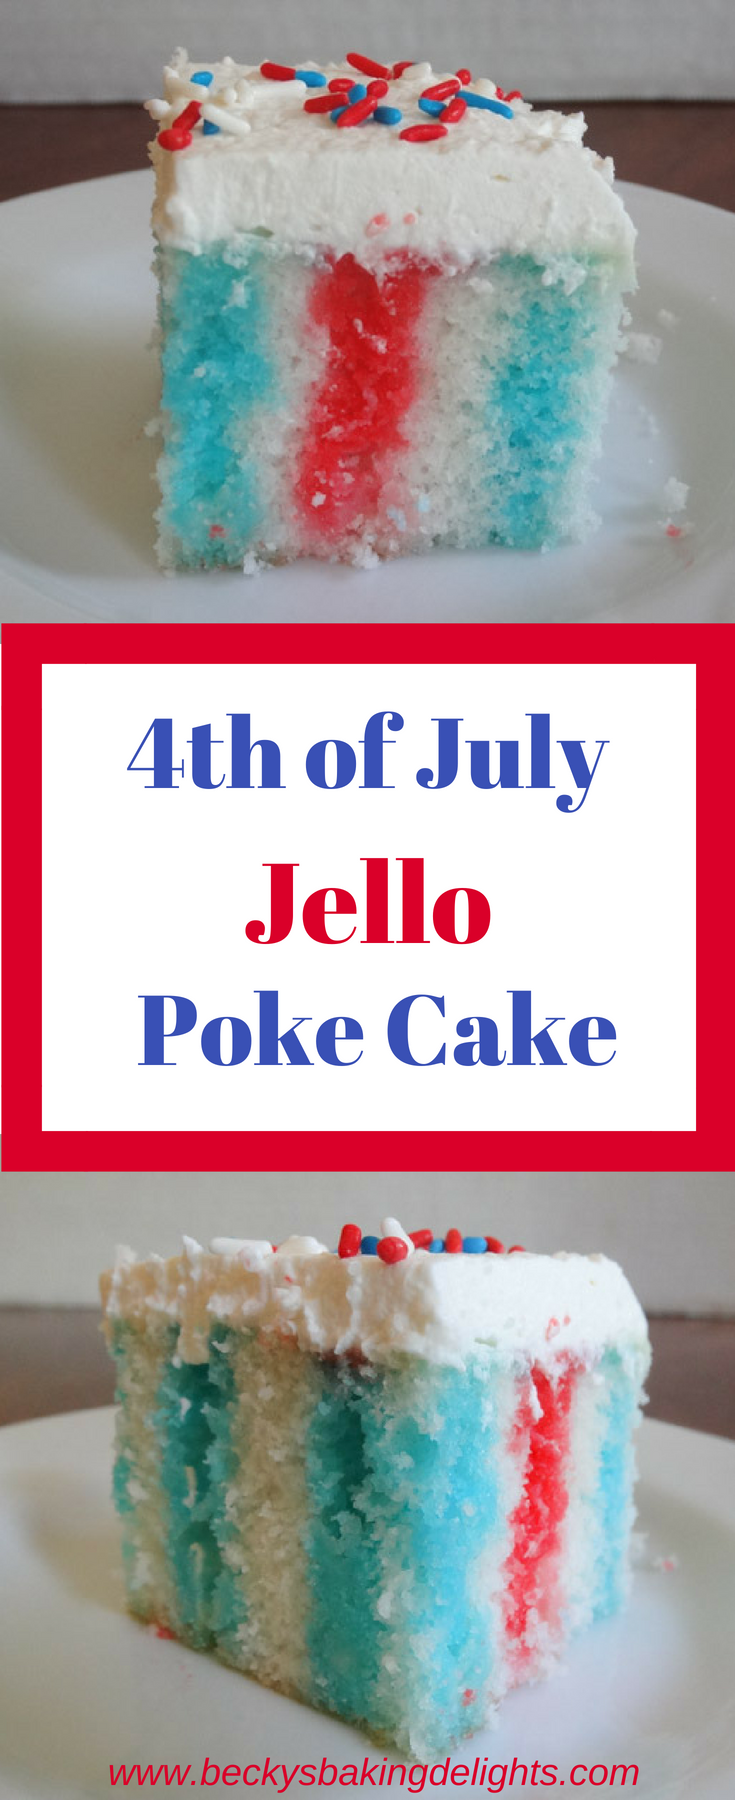 Poke Cake This colorful jello poke cake is a great addition for a Summer dessert. Simple to make and taste great.This colorful jello poke cake is a great addition for a Summer dessert. Simple to make and taste great.